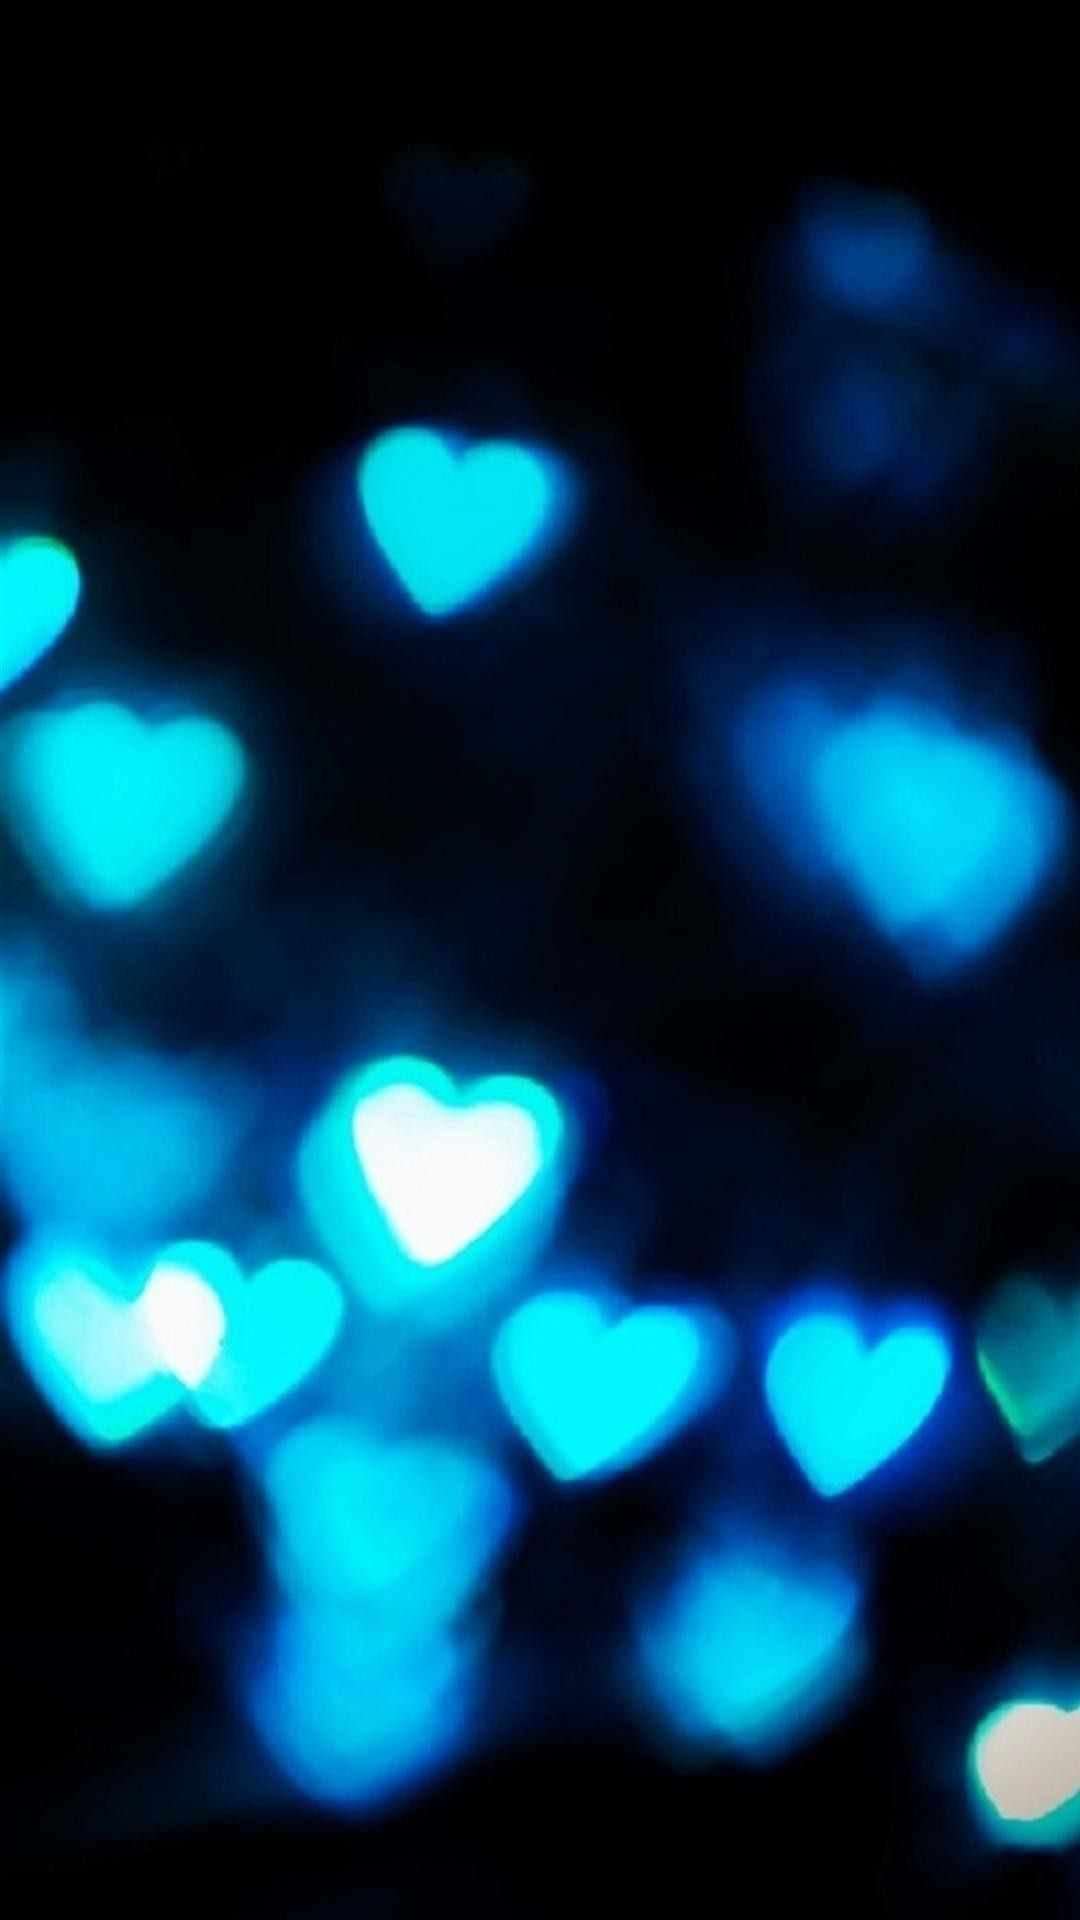 1080x1920 Htc One M8 Mobile Wallpapers Hd Blue Hearts